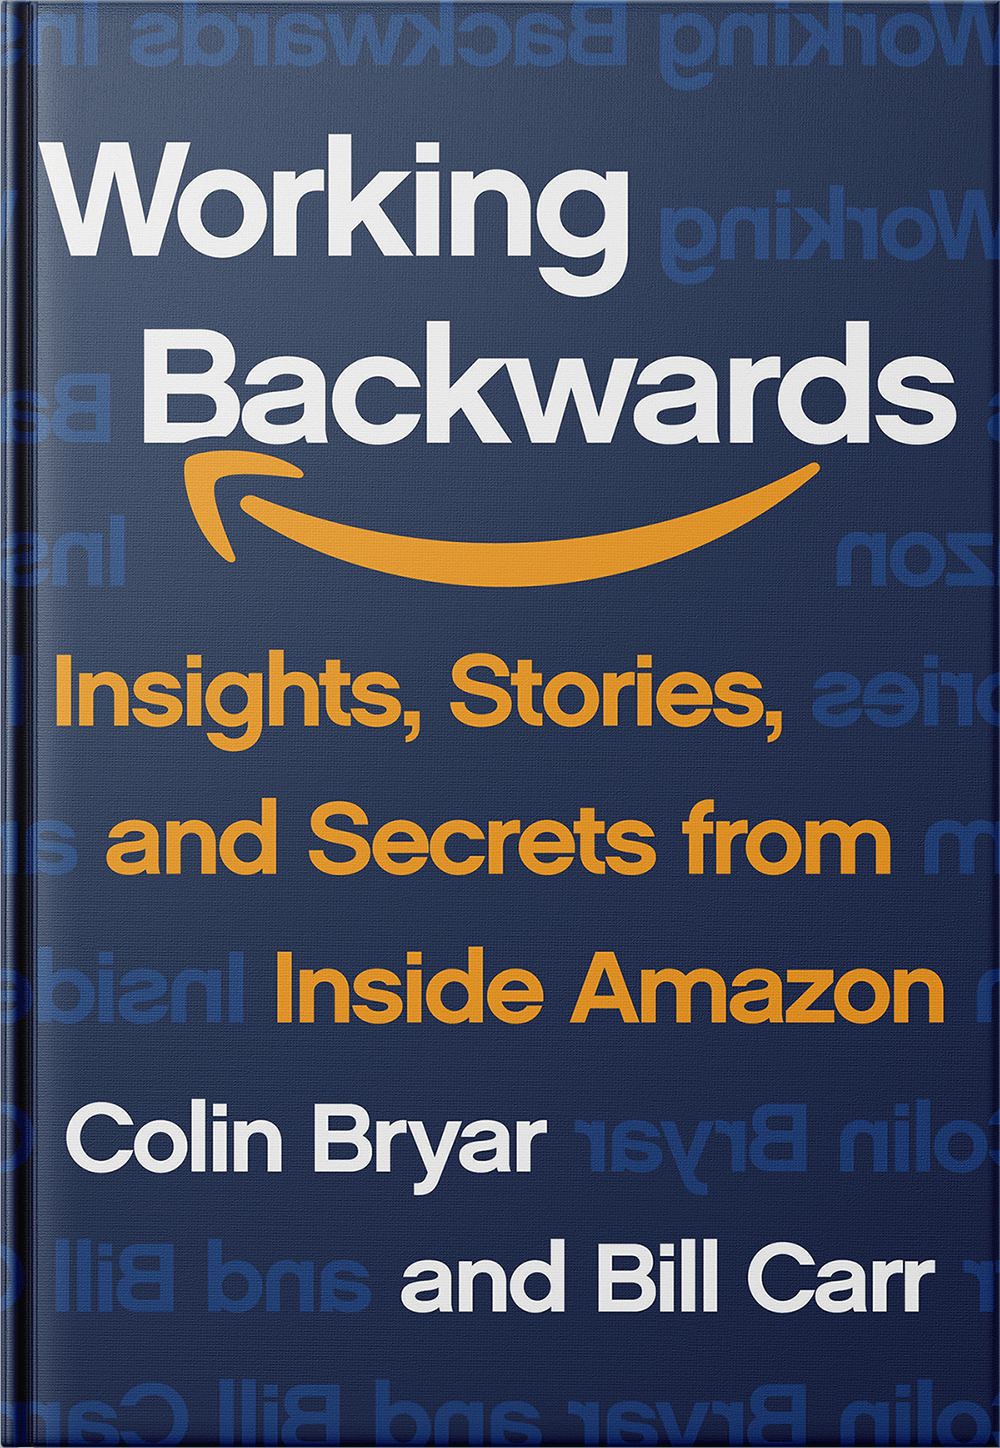 Working Backwards - Insights, Stories, and Secrets from Inside Amazon